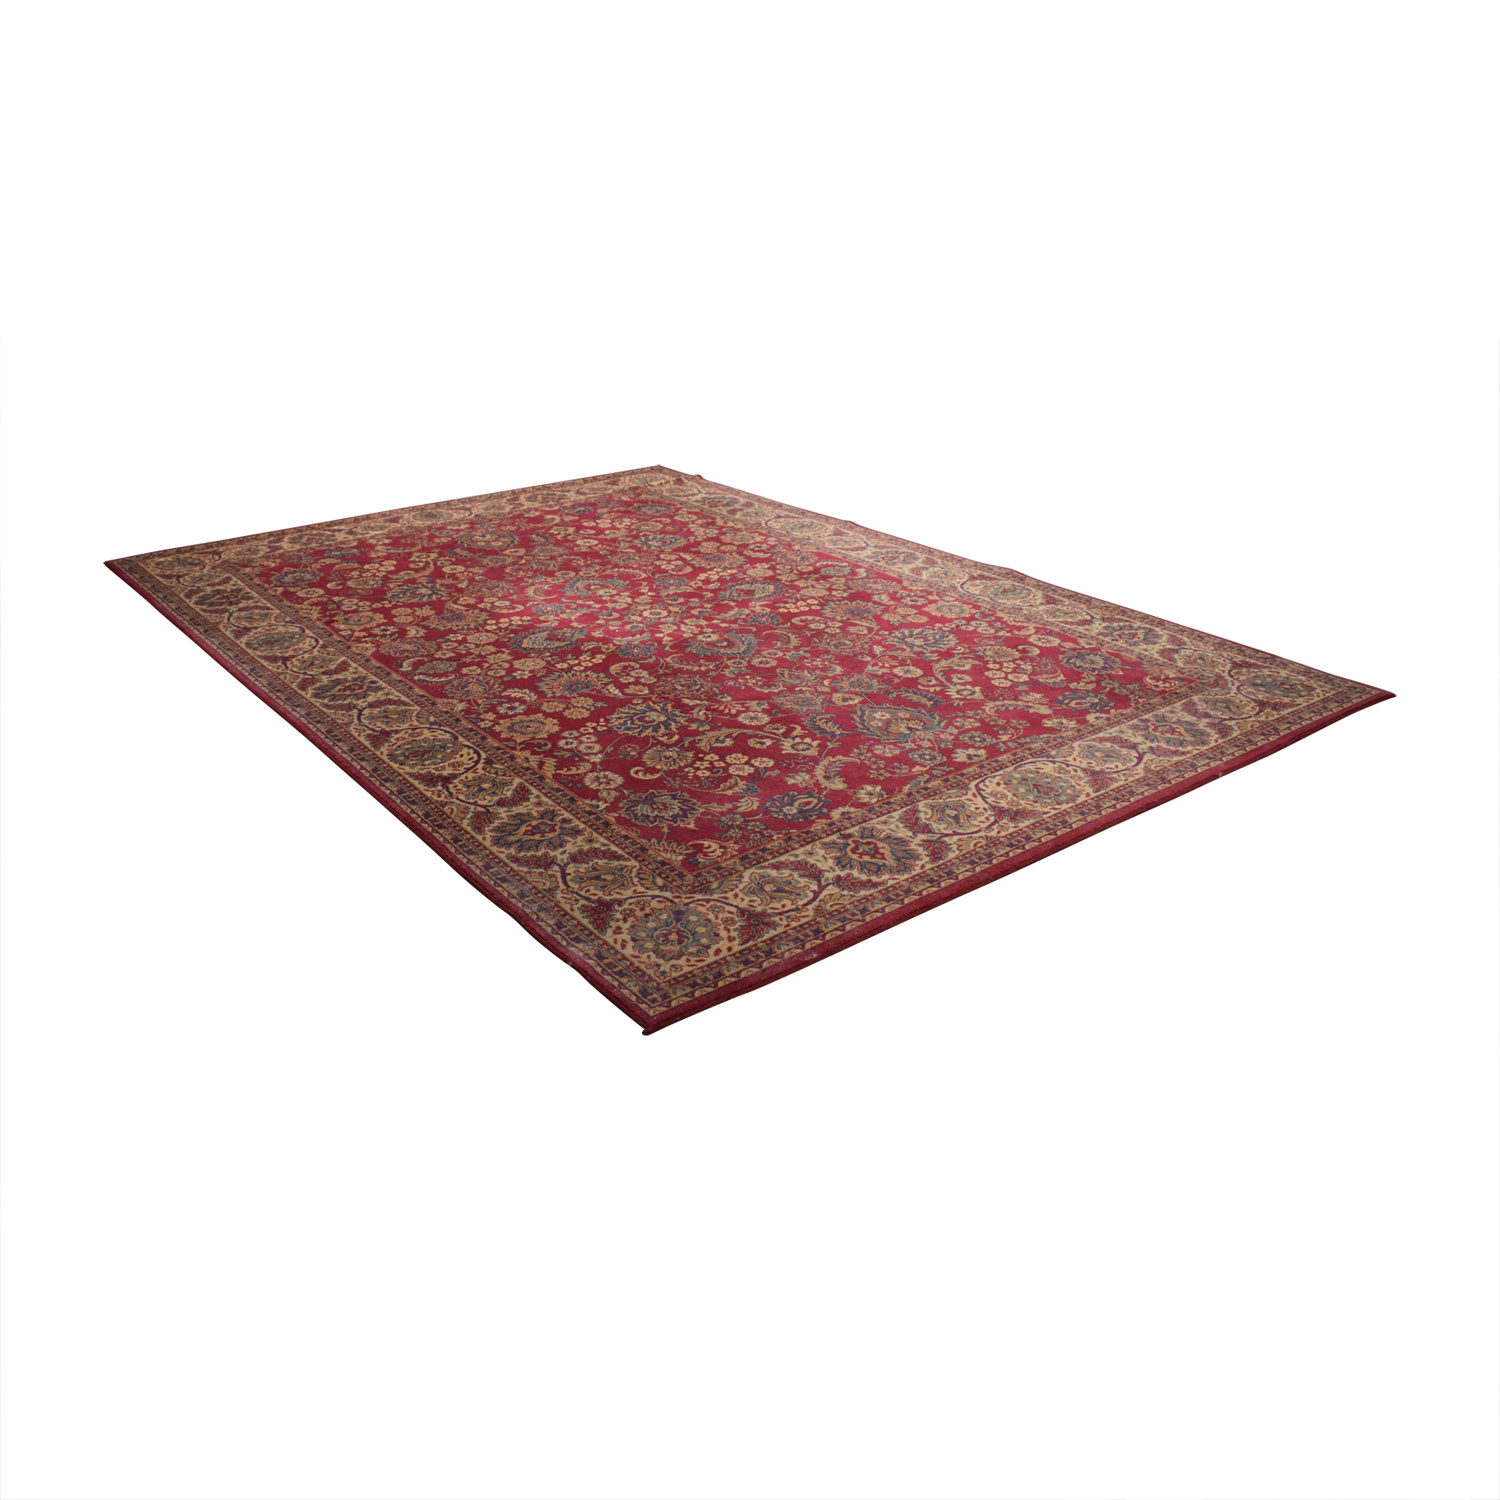 Belgium Masters Red Persian Rug sale